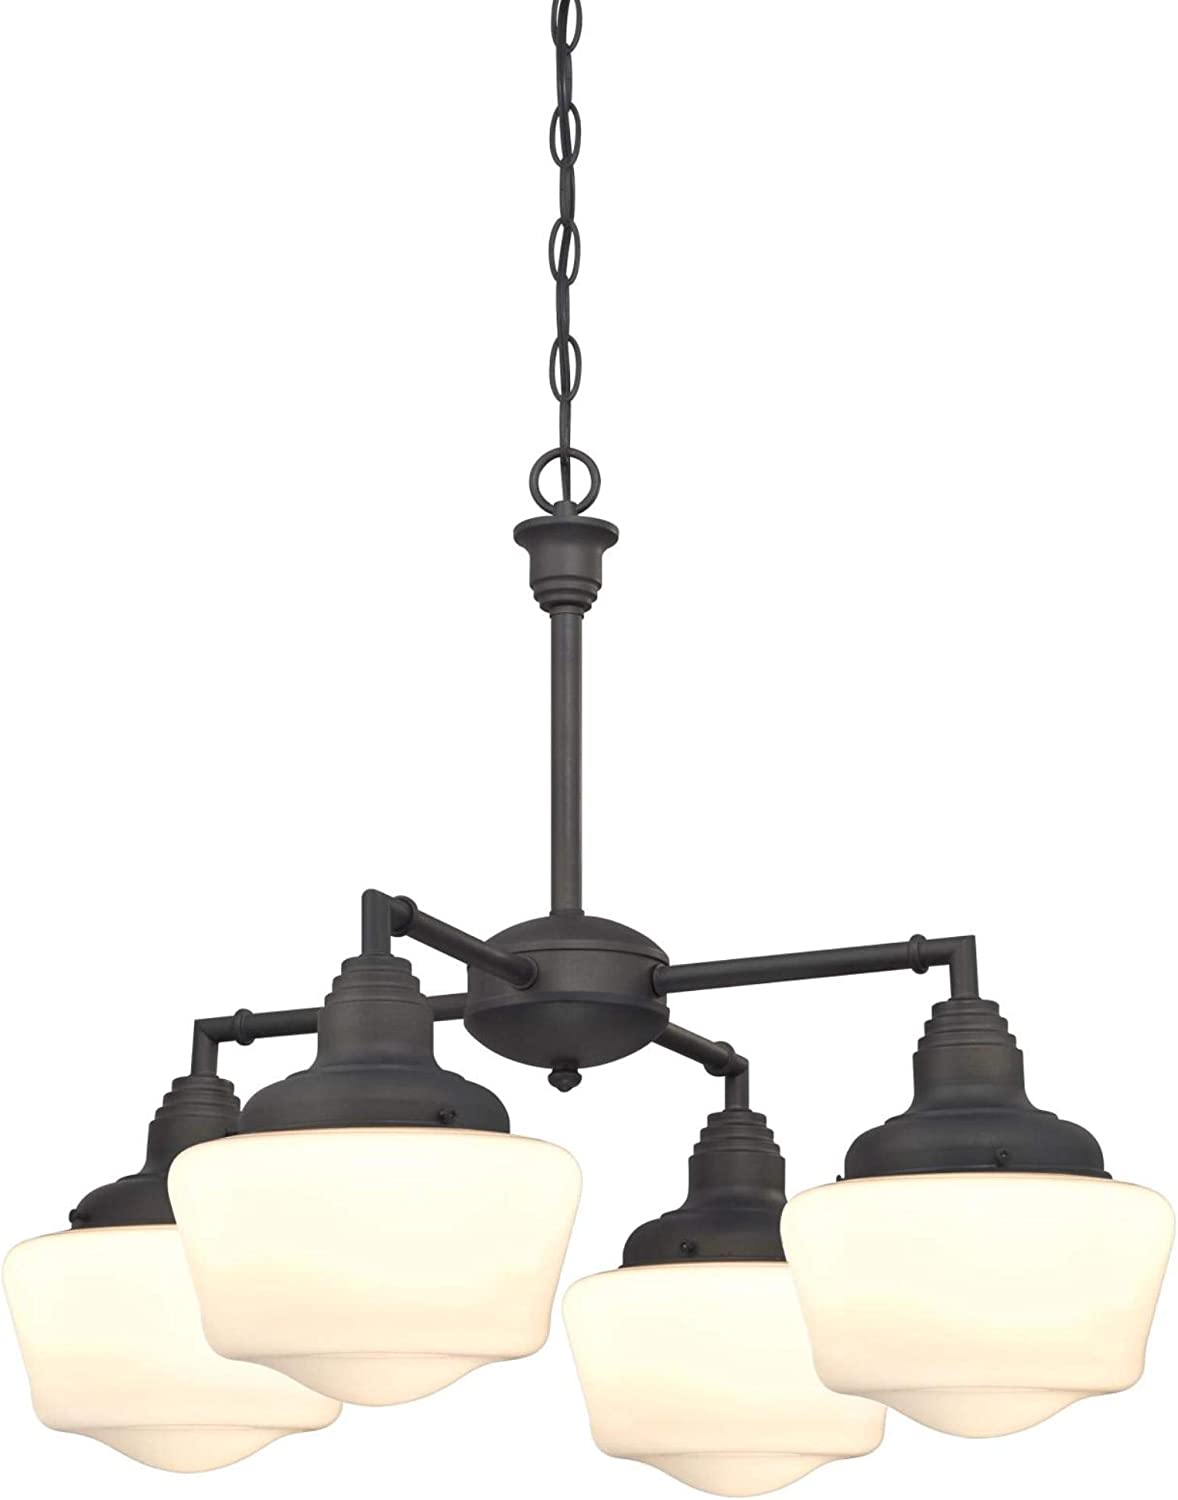 Westinghouse Lighting 6342000 Scholar Four-Light Indoor Convertible Chandelier Semi-Flush Ceiling Fixture, Oil Rubbed Bronze Finish with White Opal Glass